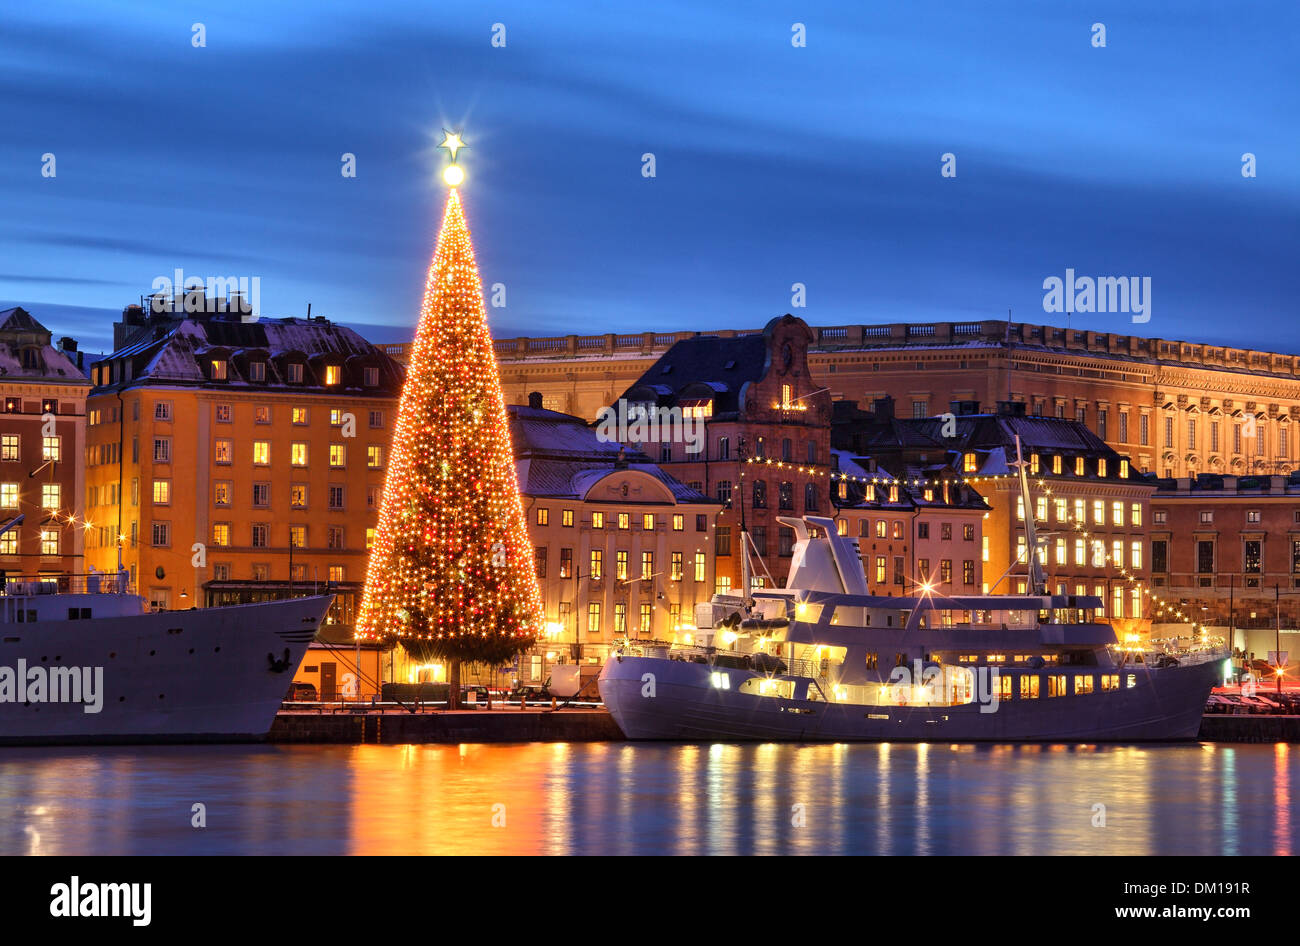 Stockholms old city with christmas tree - Stock Image